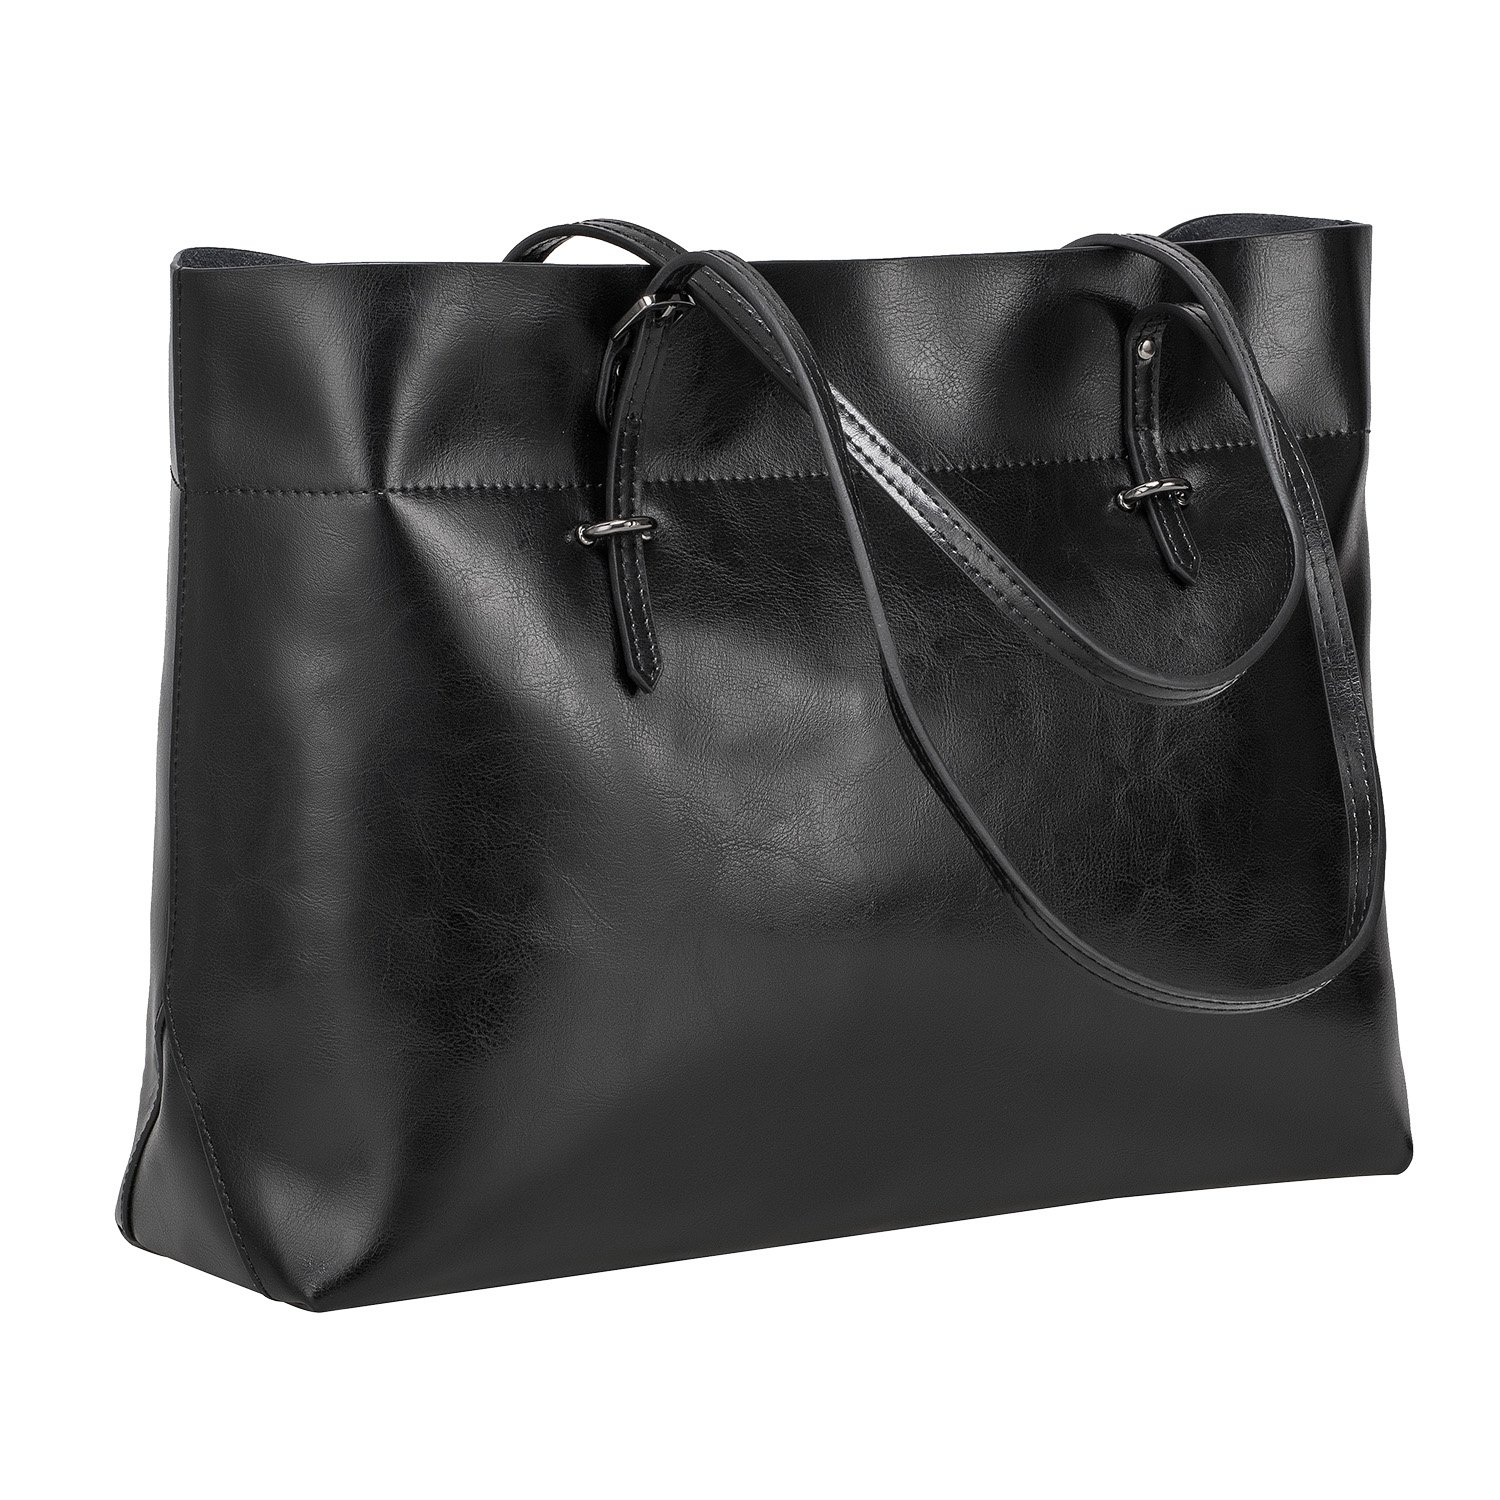 S-ZONE Women's Vintage Genuine Leather Tote Shoulder Bag Handbag Upgraded Version (Black)